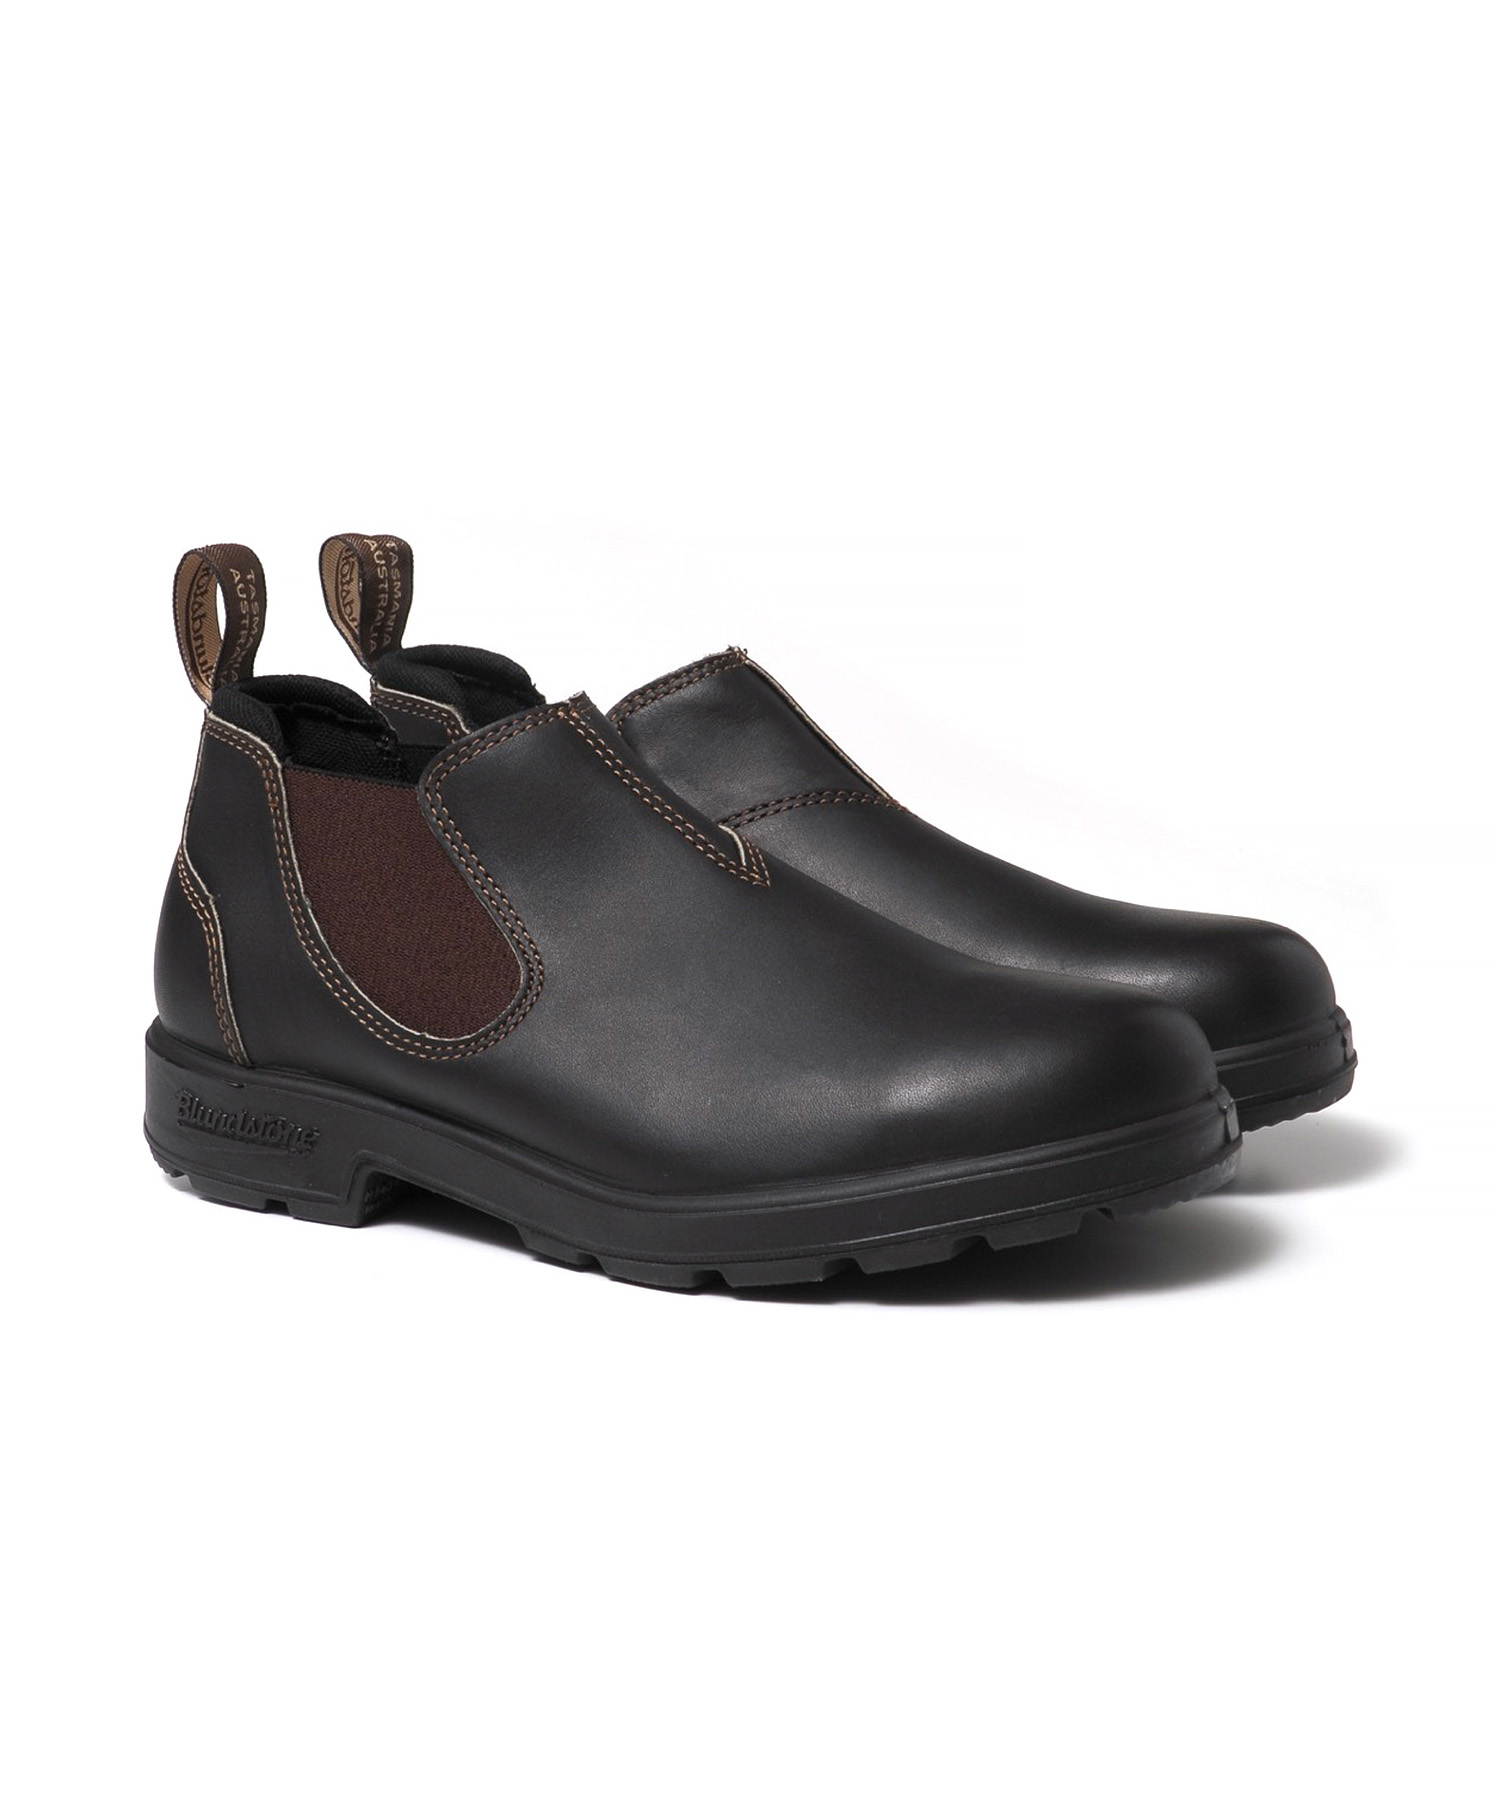 BLUNDSTONE BS1610